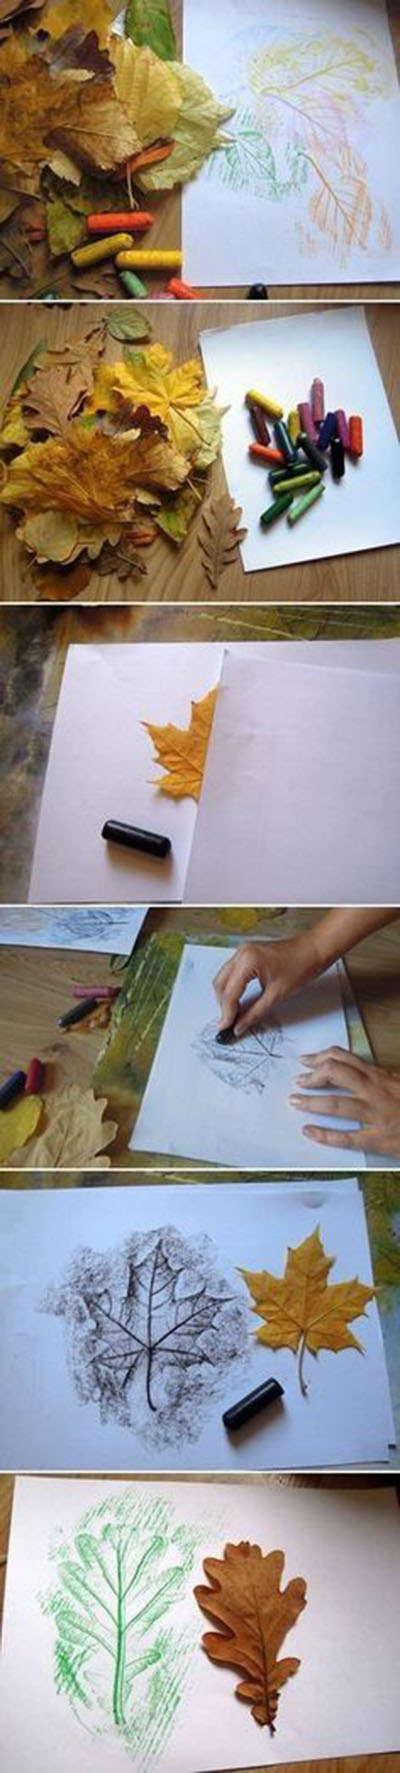 7 DIY Leaf Drawings Pictures49dc8faf